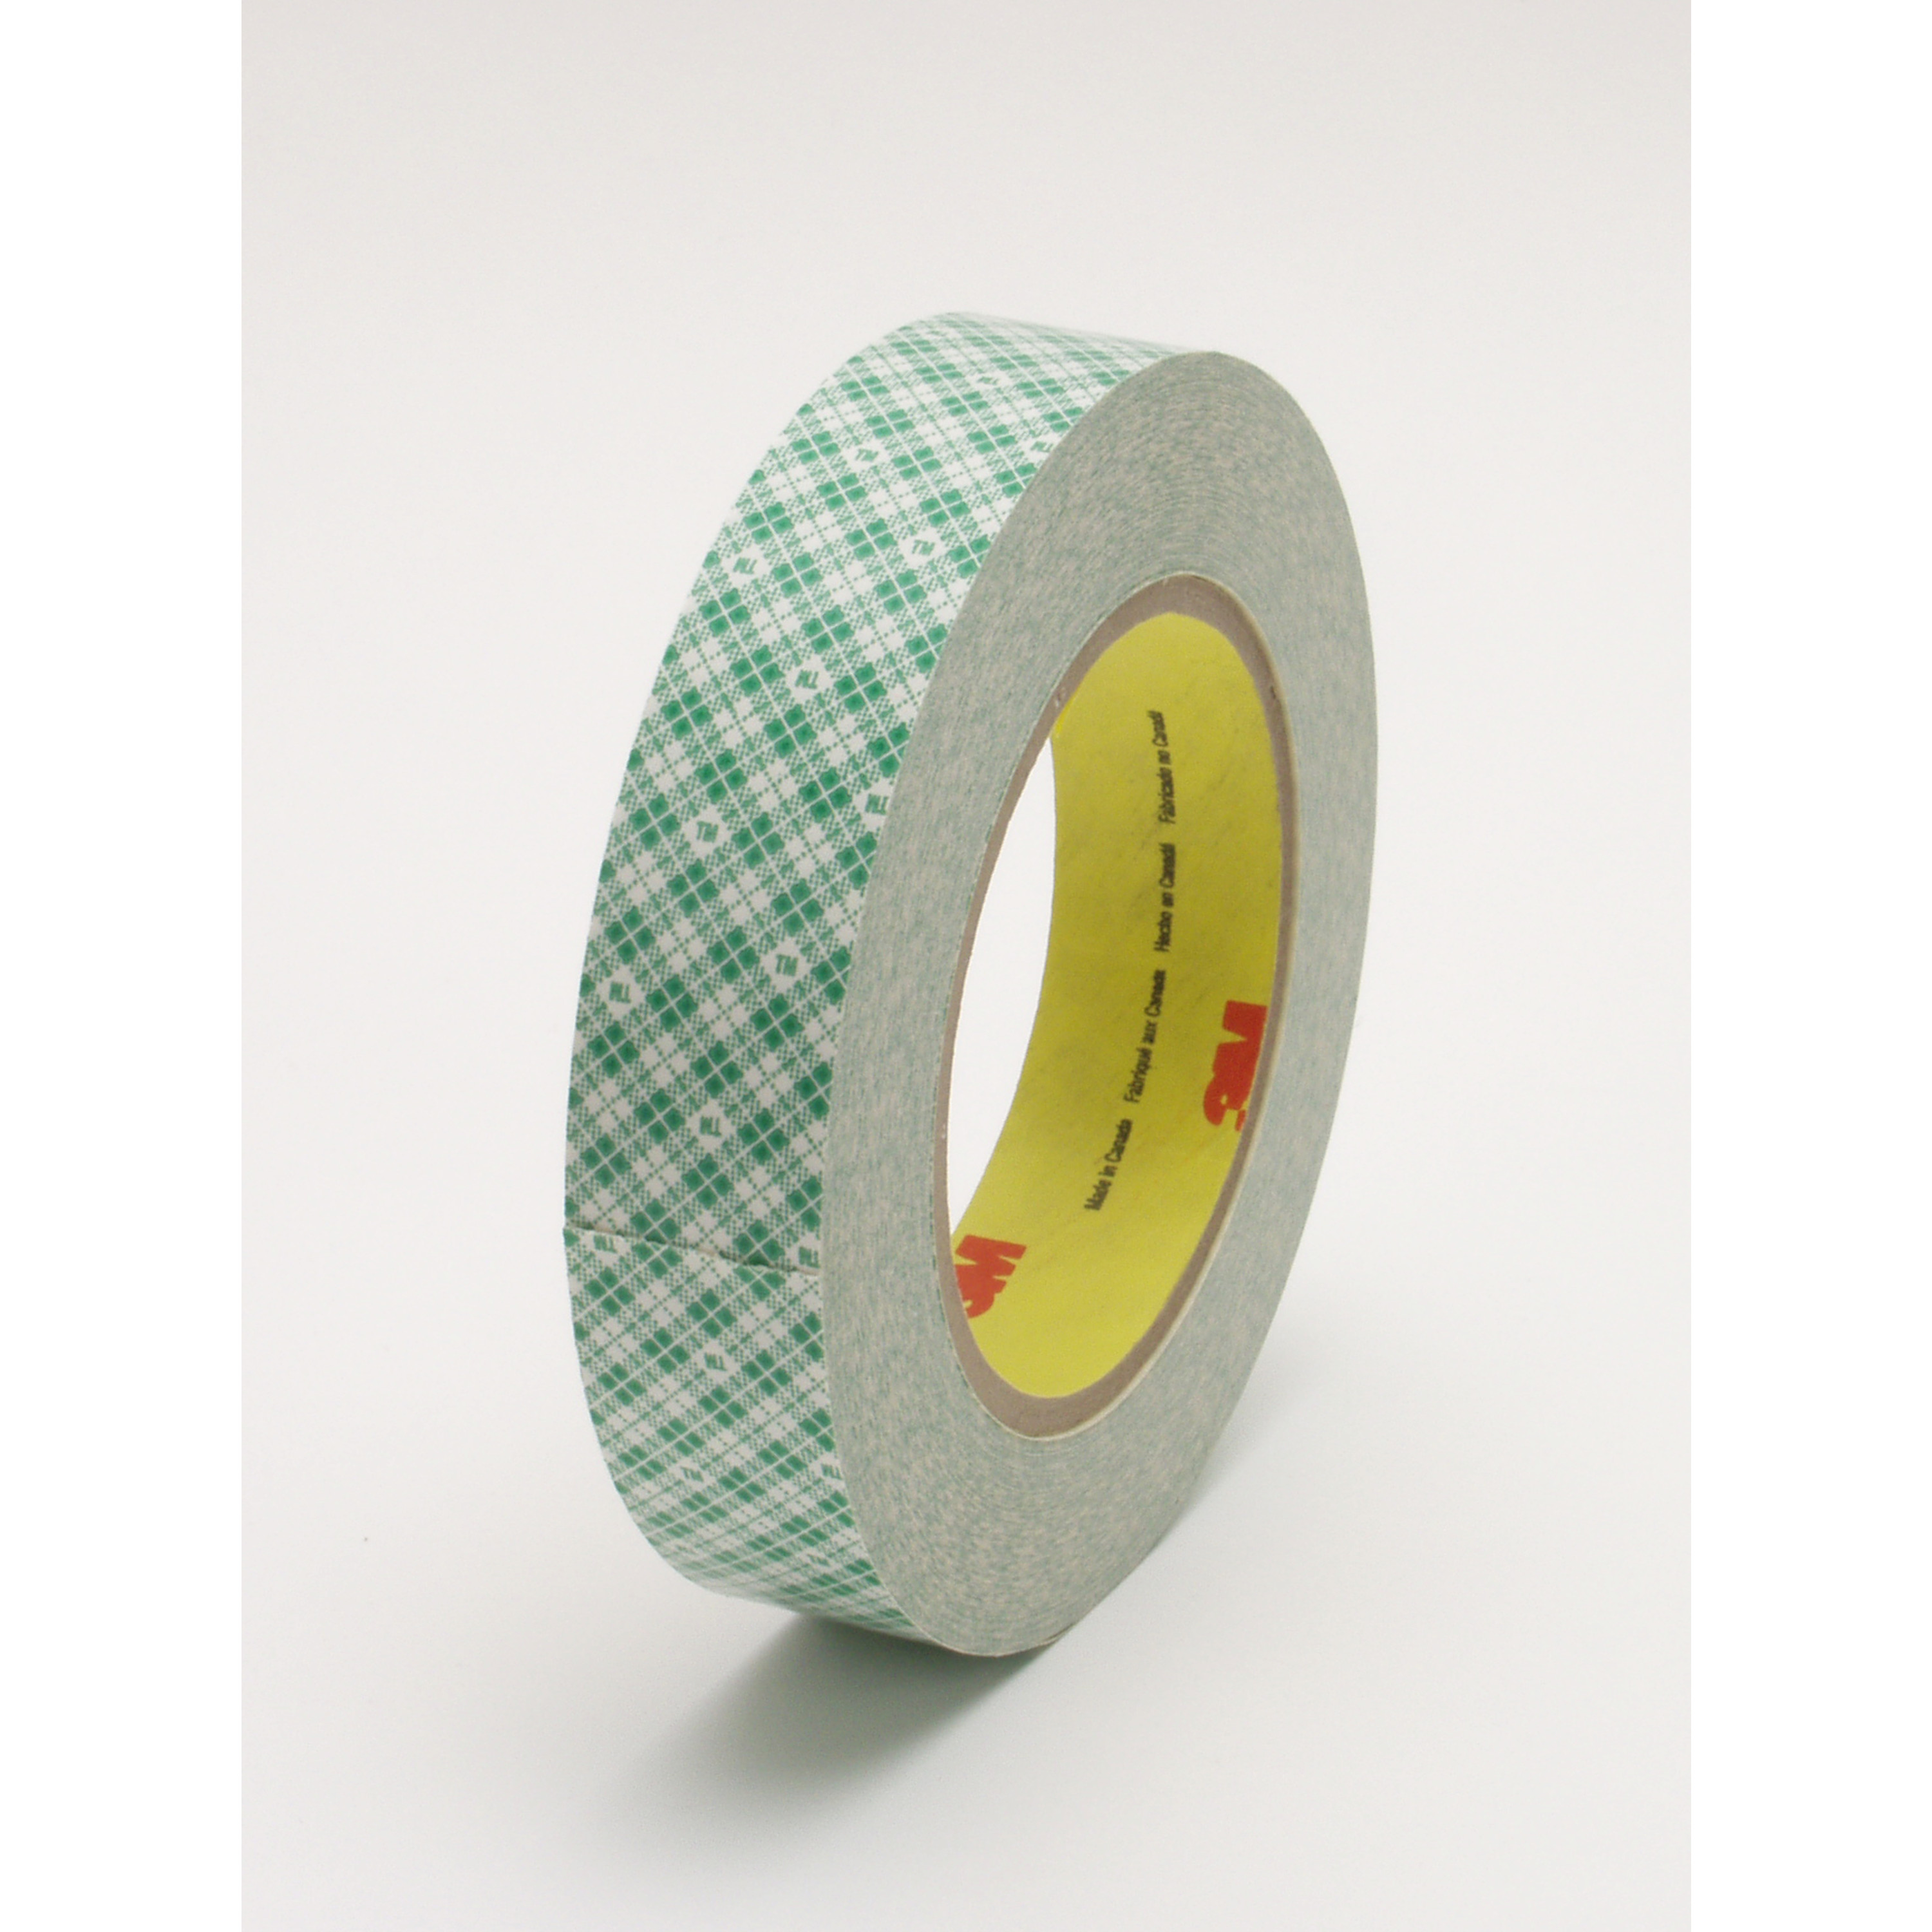 3M™ Double Coated Paper Tape 410M, Natural, 5 mil, Roll, Config